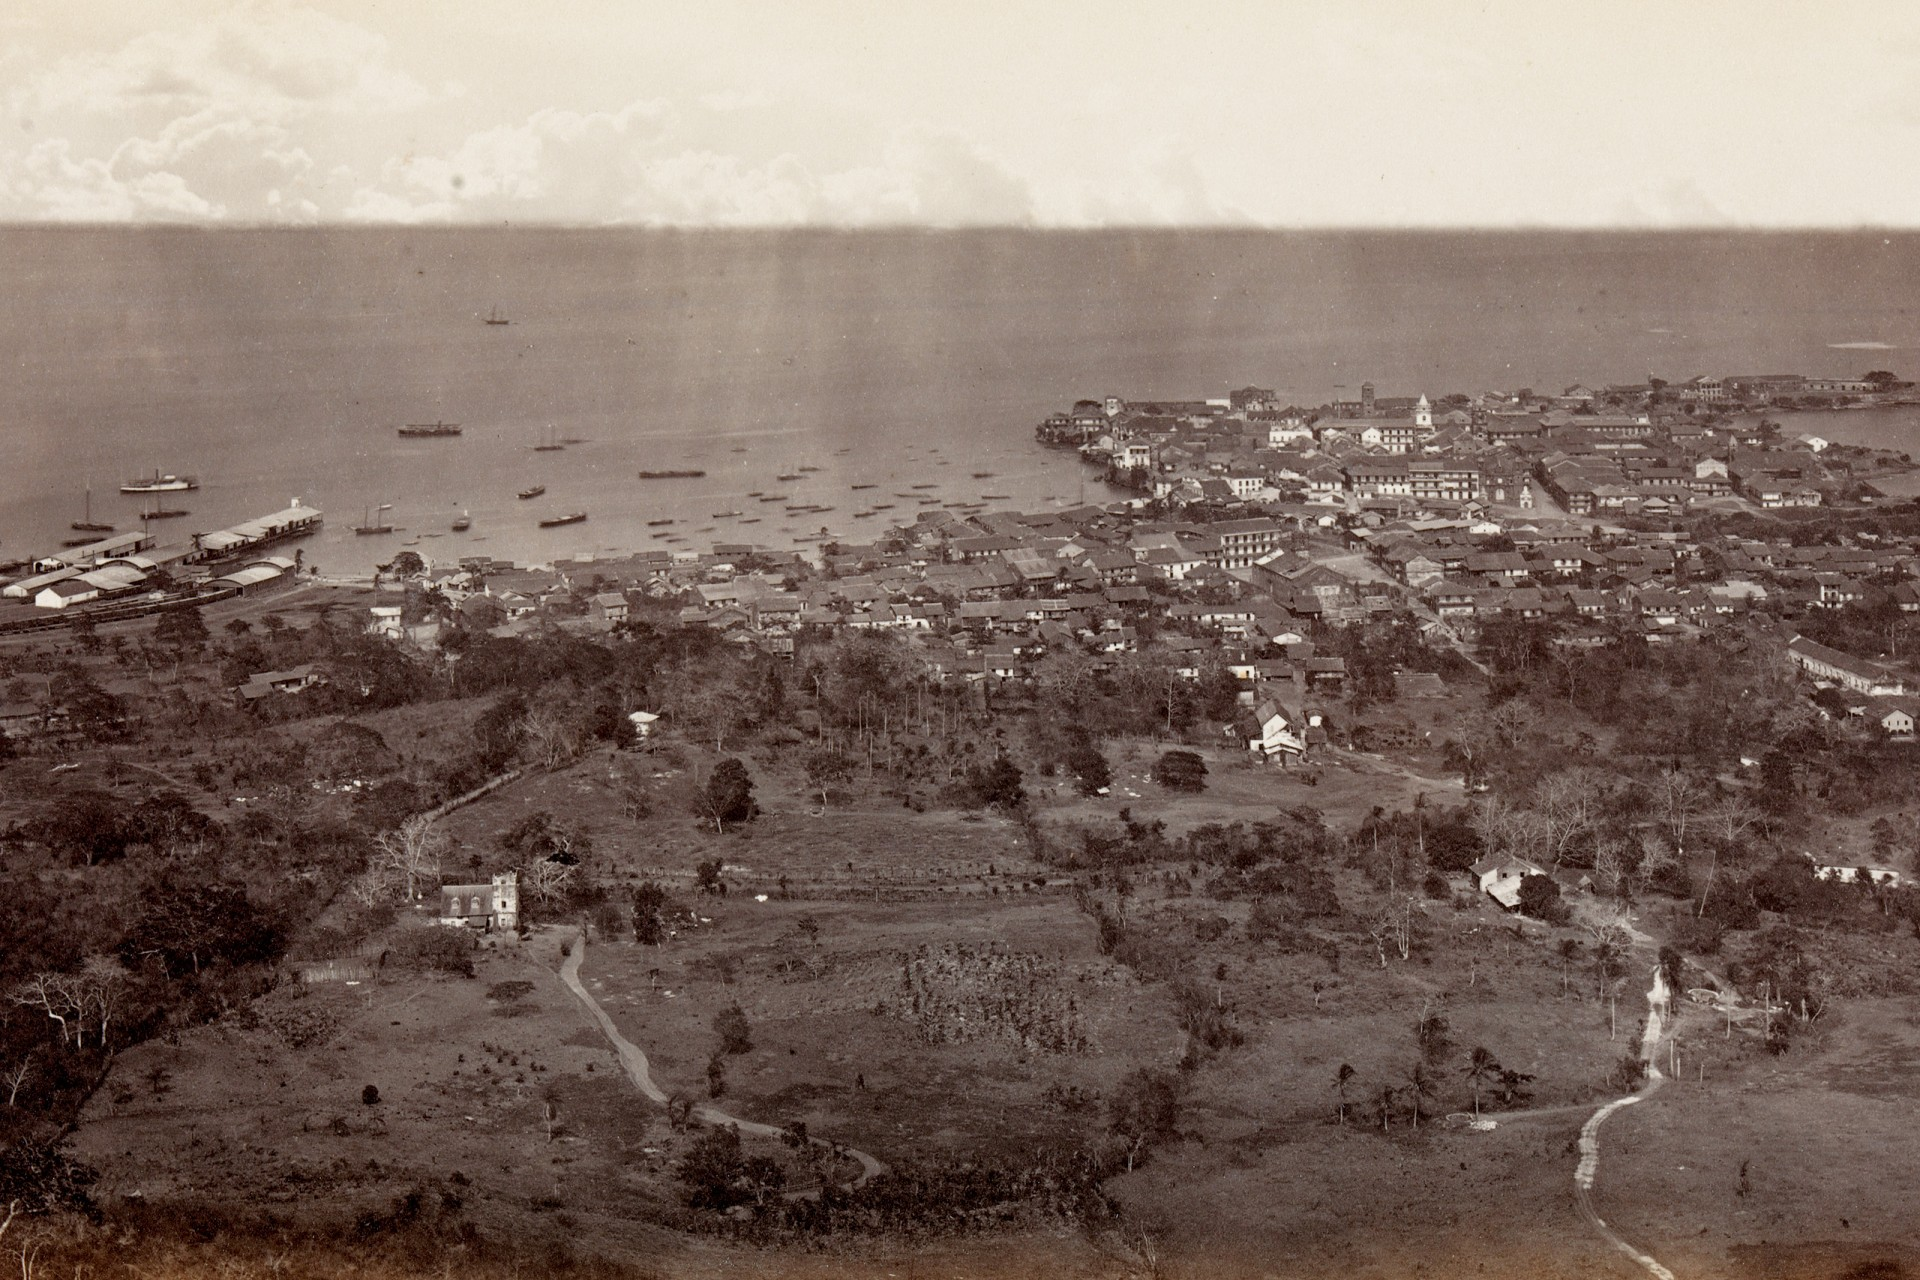 A Bee's-Eye-View of Panama in the late 1800's